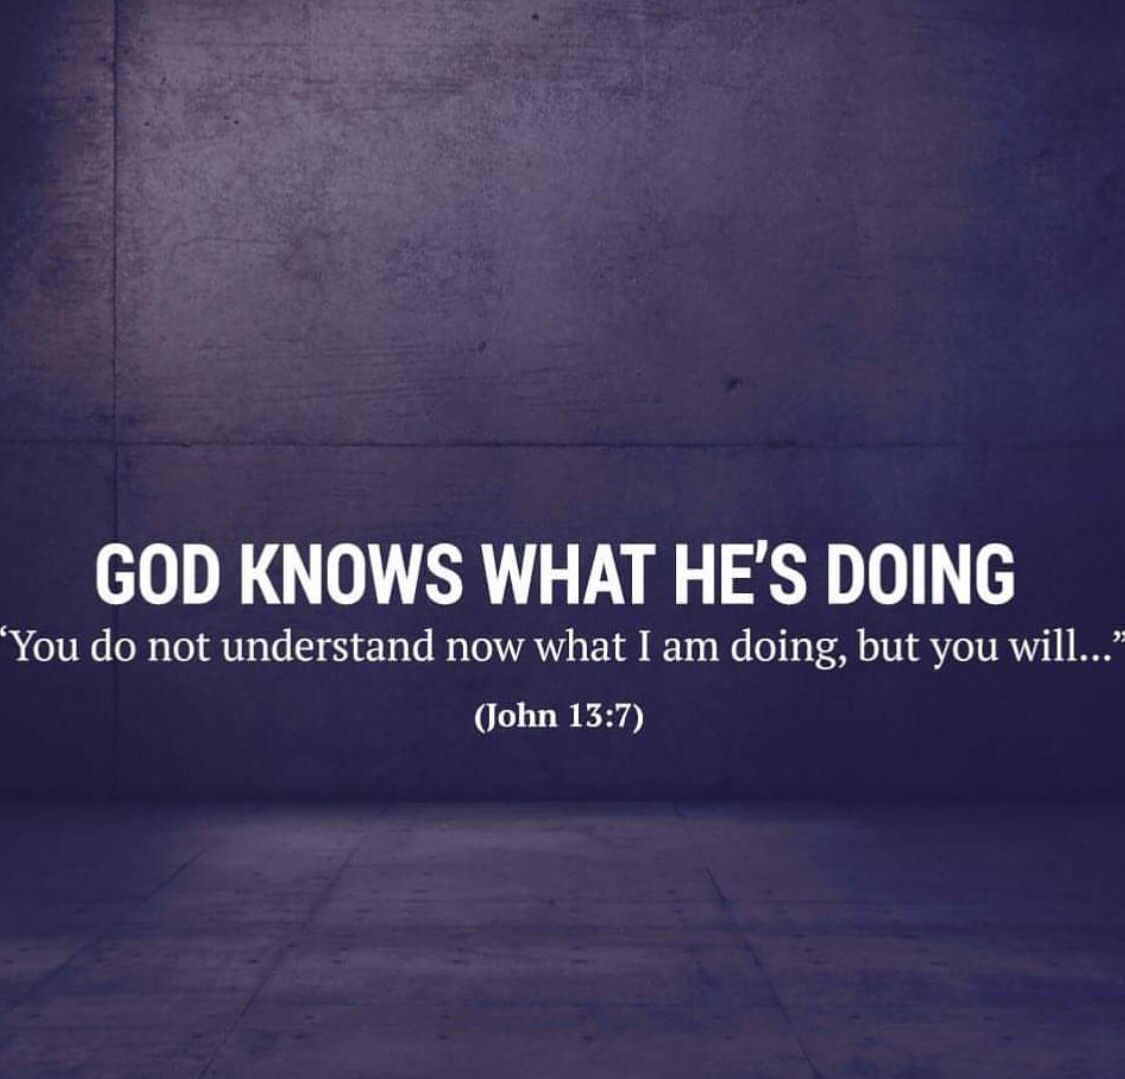 God knows what he's doing